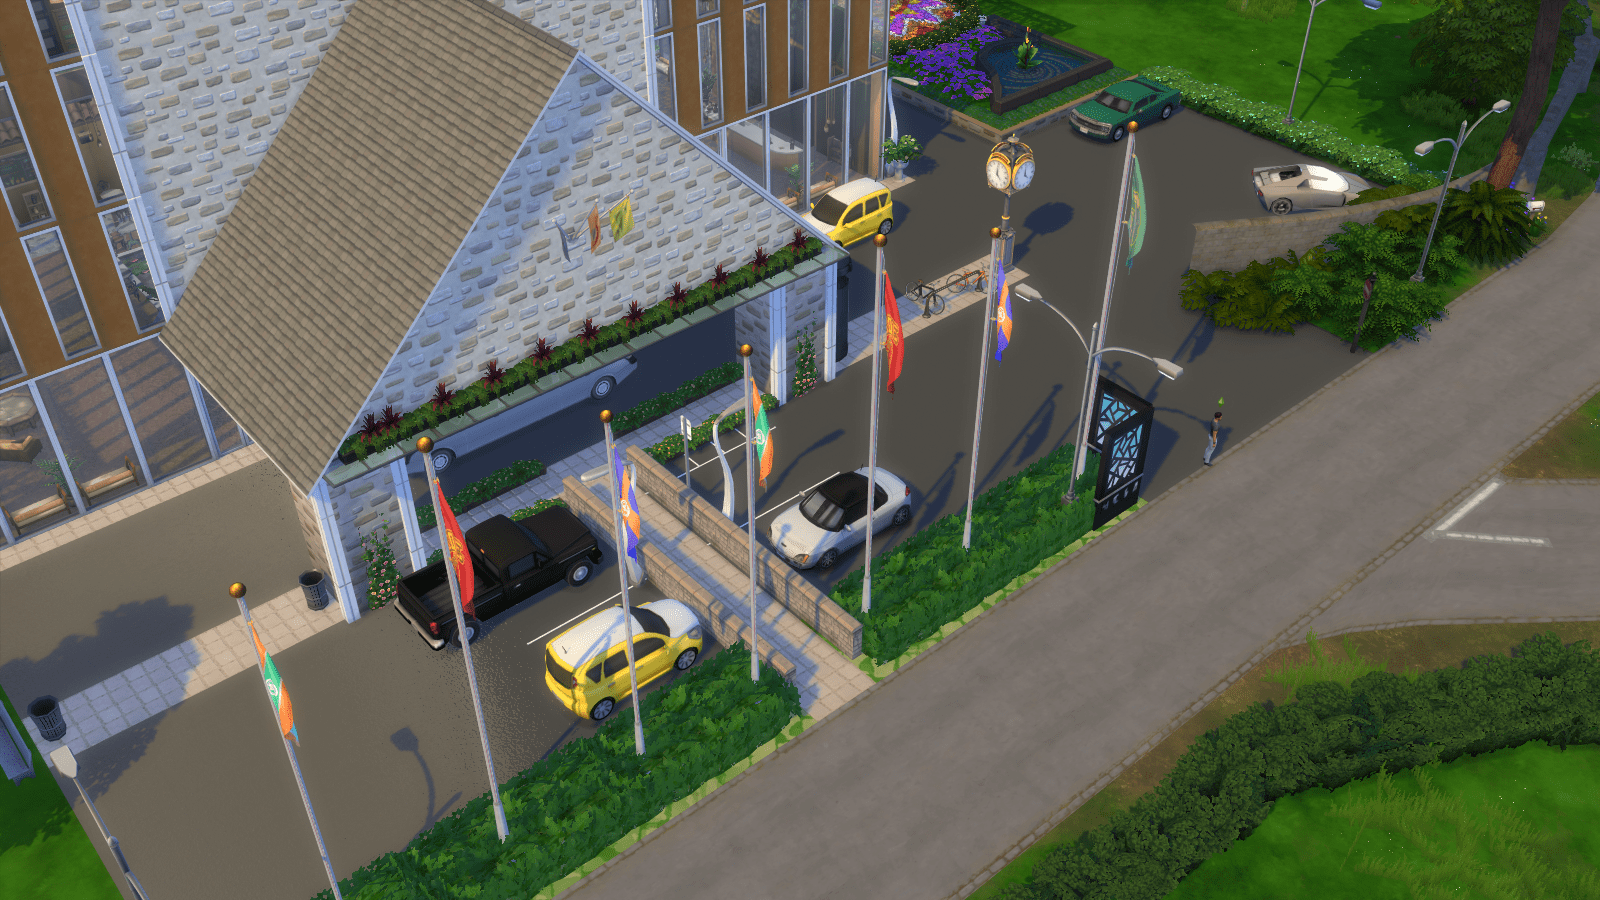 Embassy Suites Sims 4 no CC